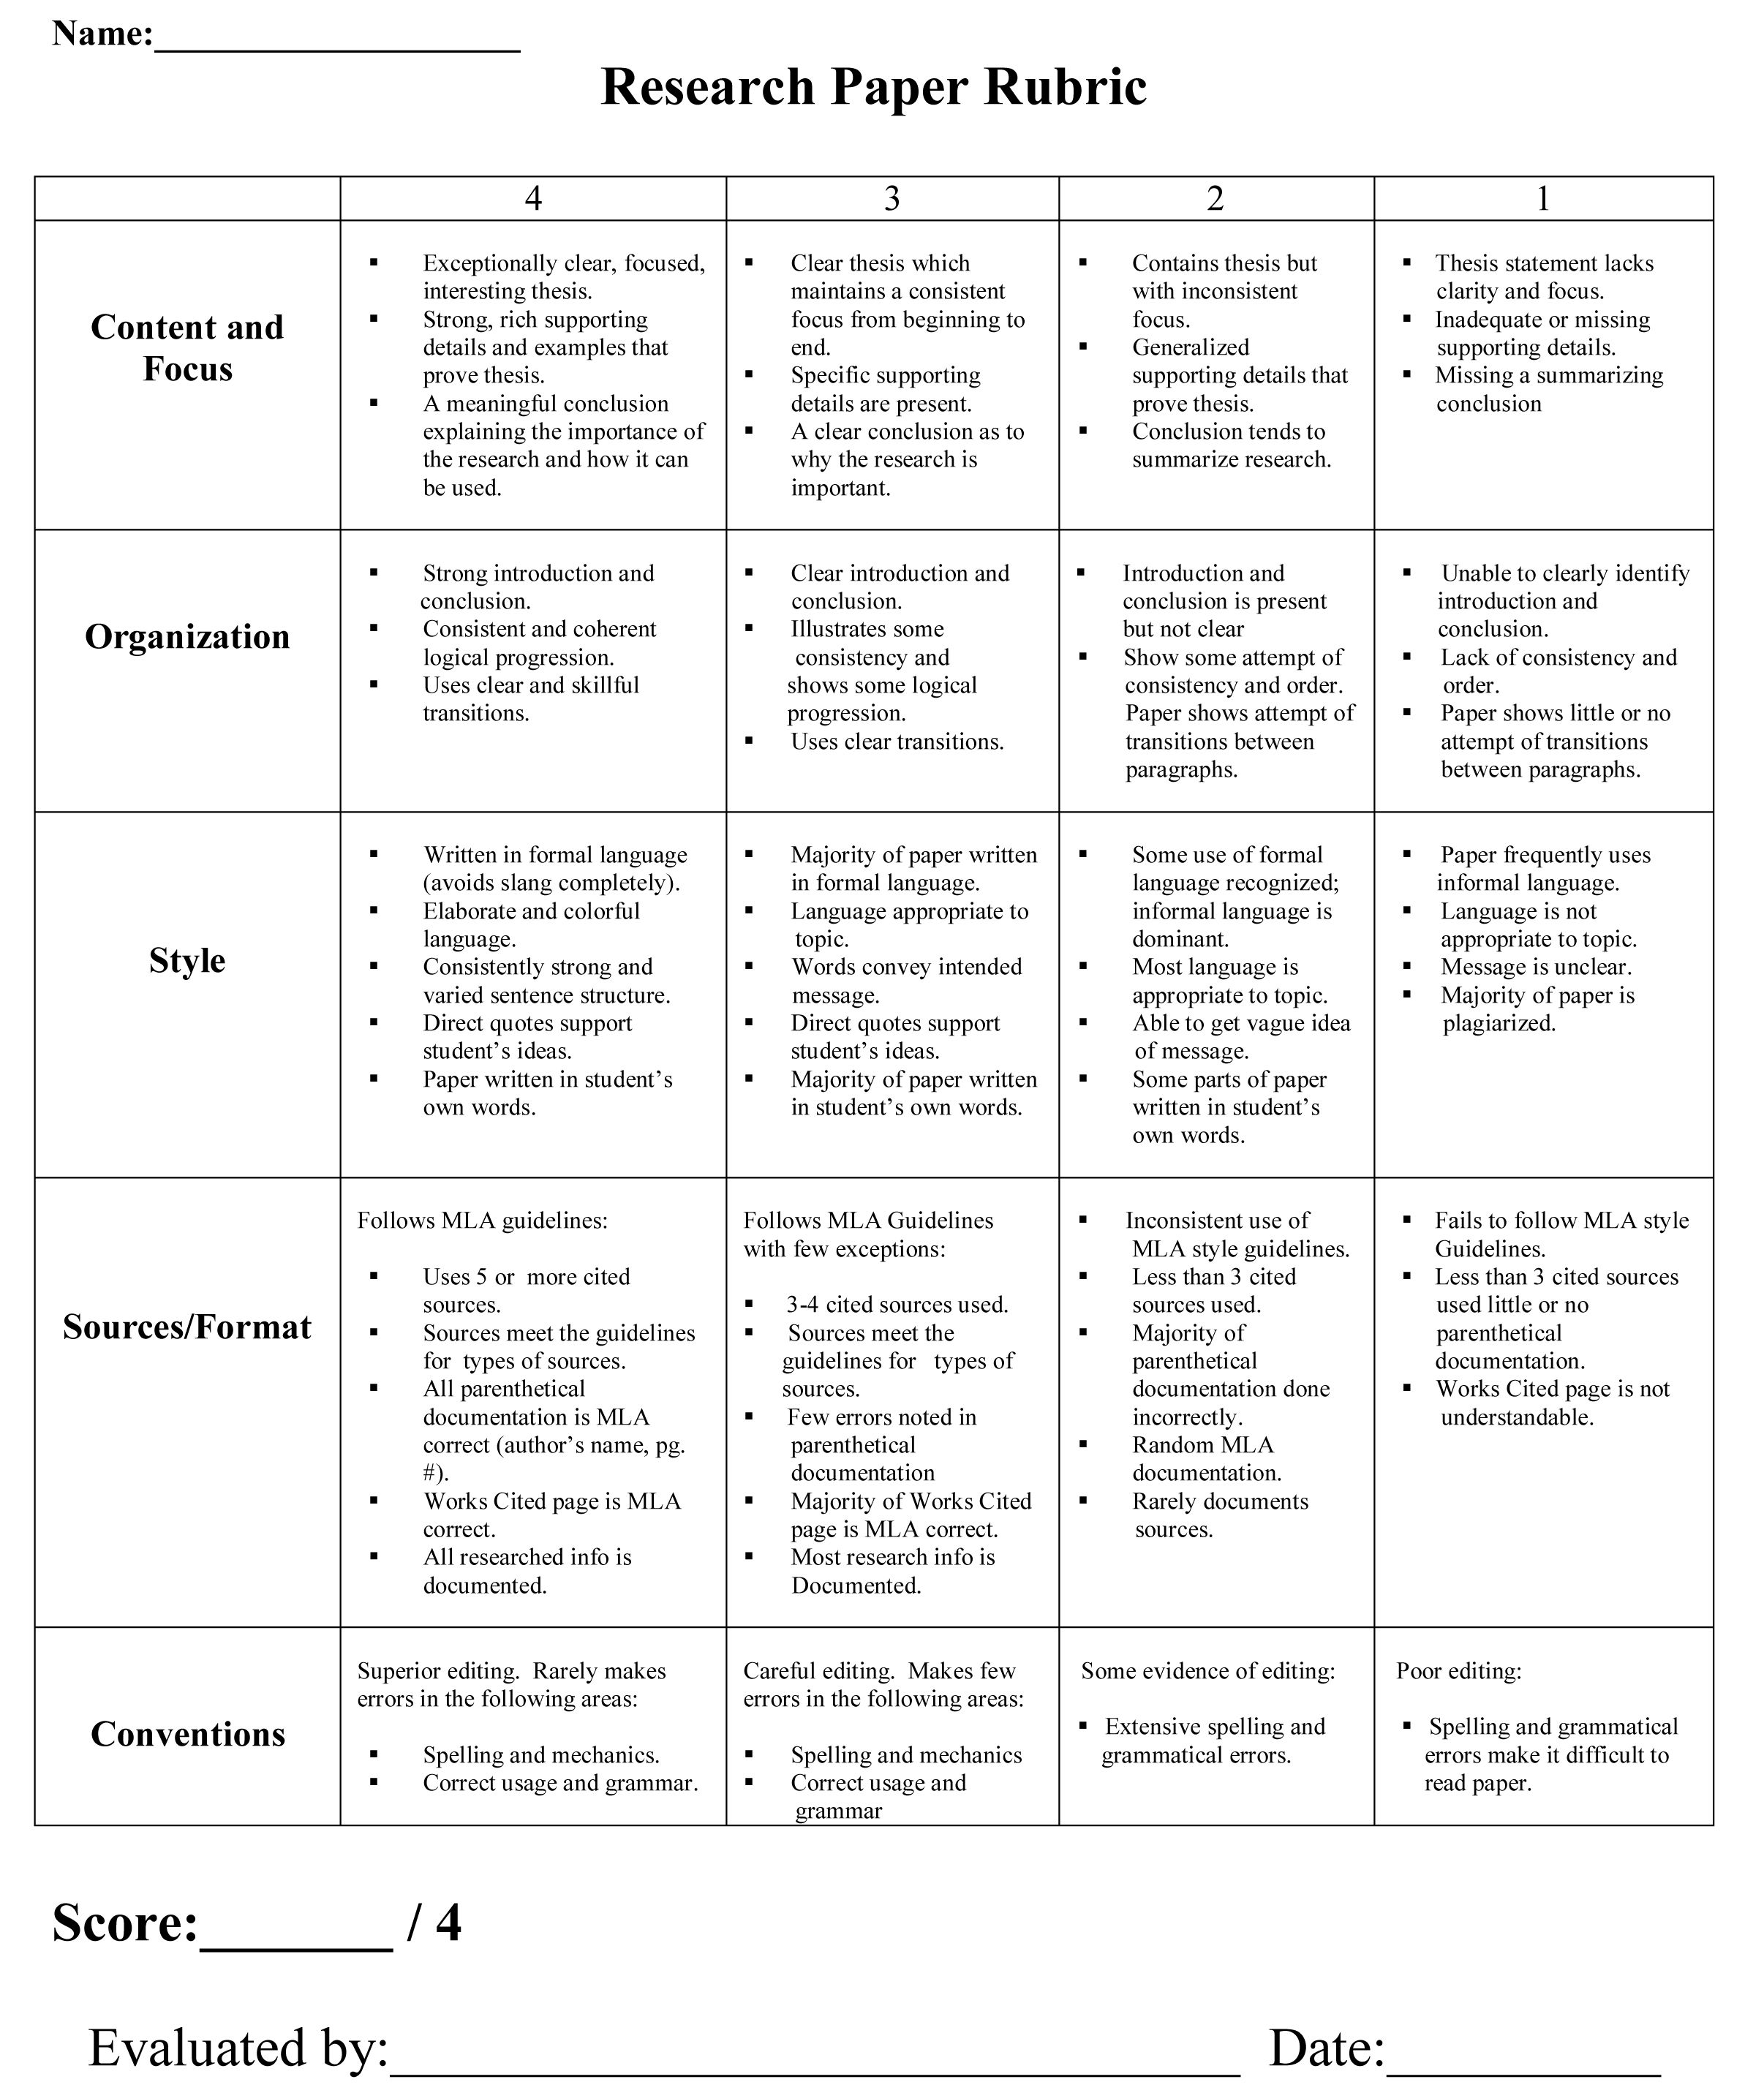 005 Research Paper Argumentative Outstanding Rubric Full